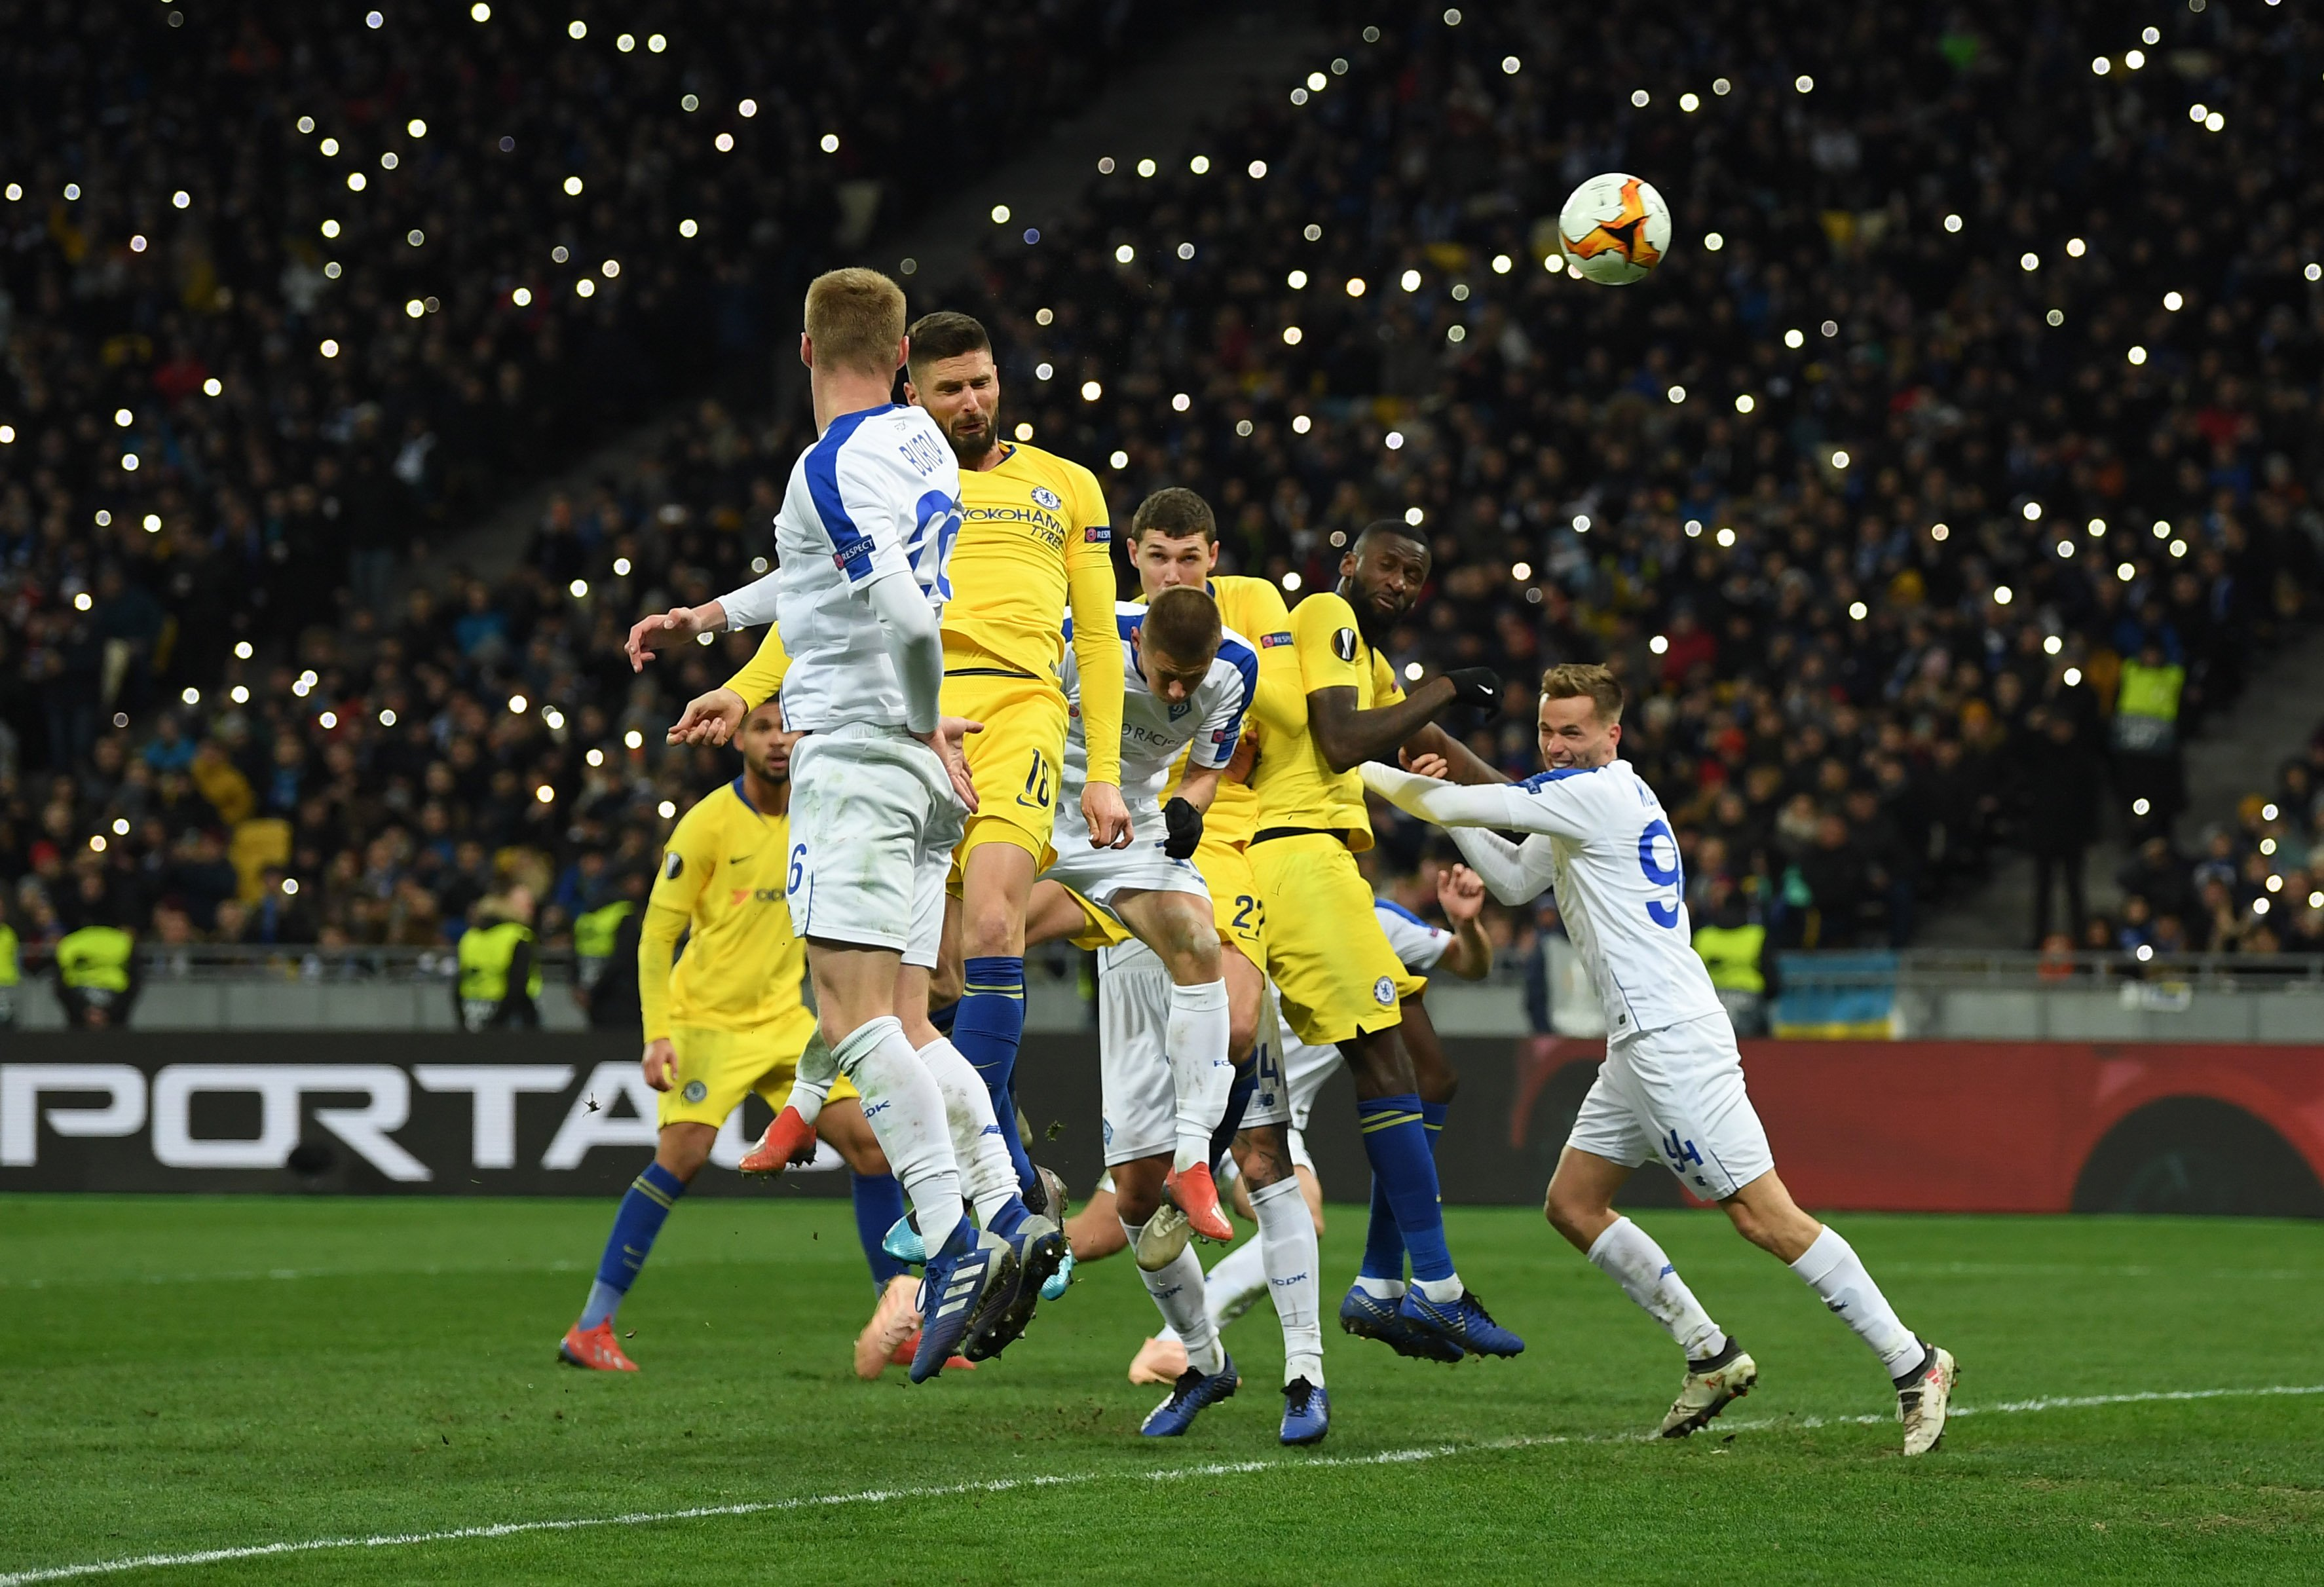 Europa League: Giroud Hat-Trick Fires Chelsea Past Kiev; Napoli, Valencia Also Qualify For Q-Finals